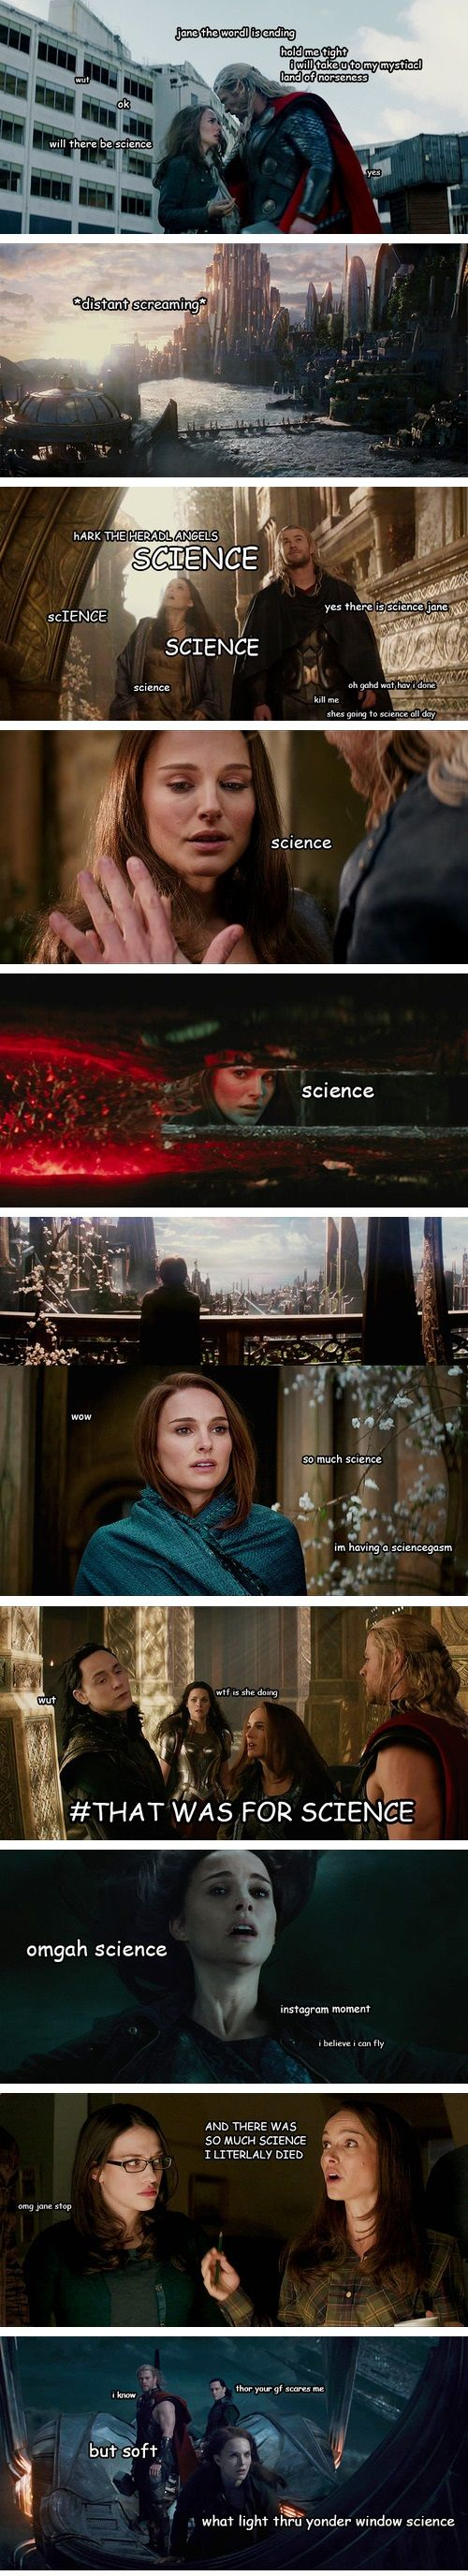 "Thor: The Dark World - The romantic story of Jane + Science. (""What light through yonder window science"") (""hARK THE HERADL ANGELS SCIENCE"")"